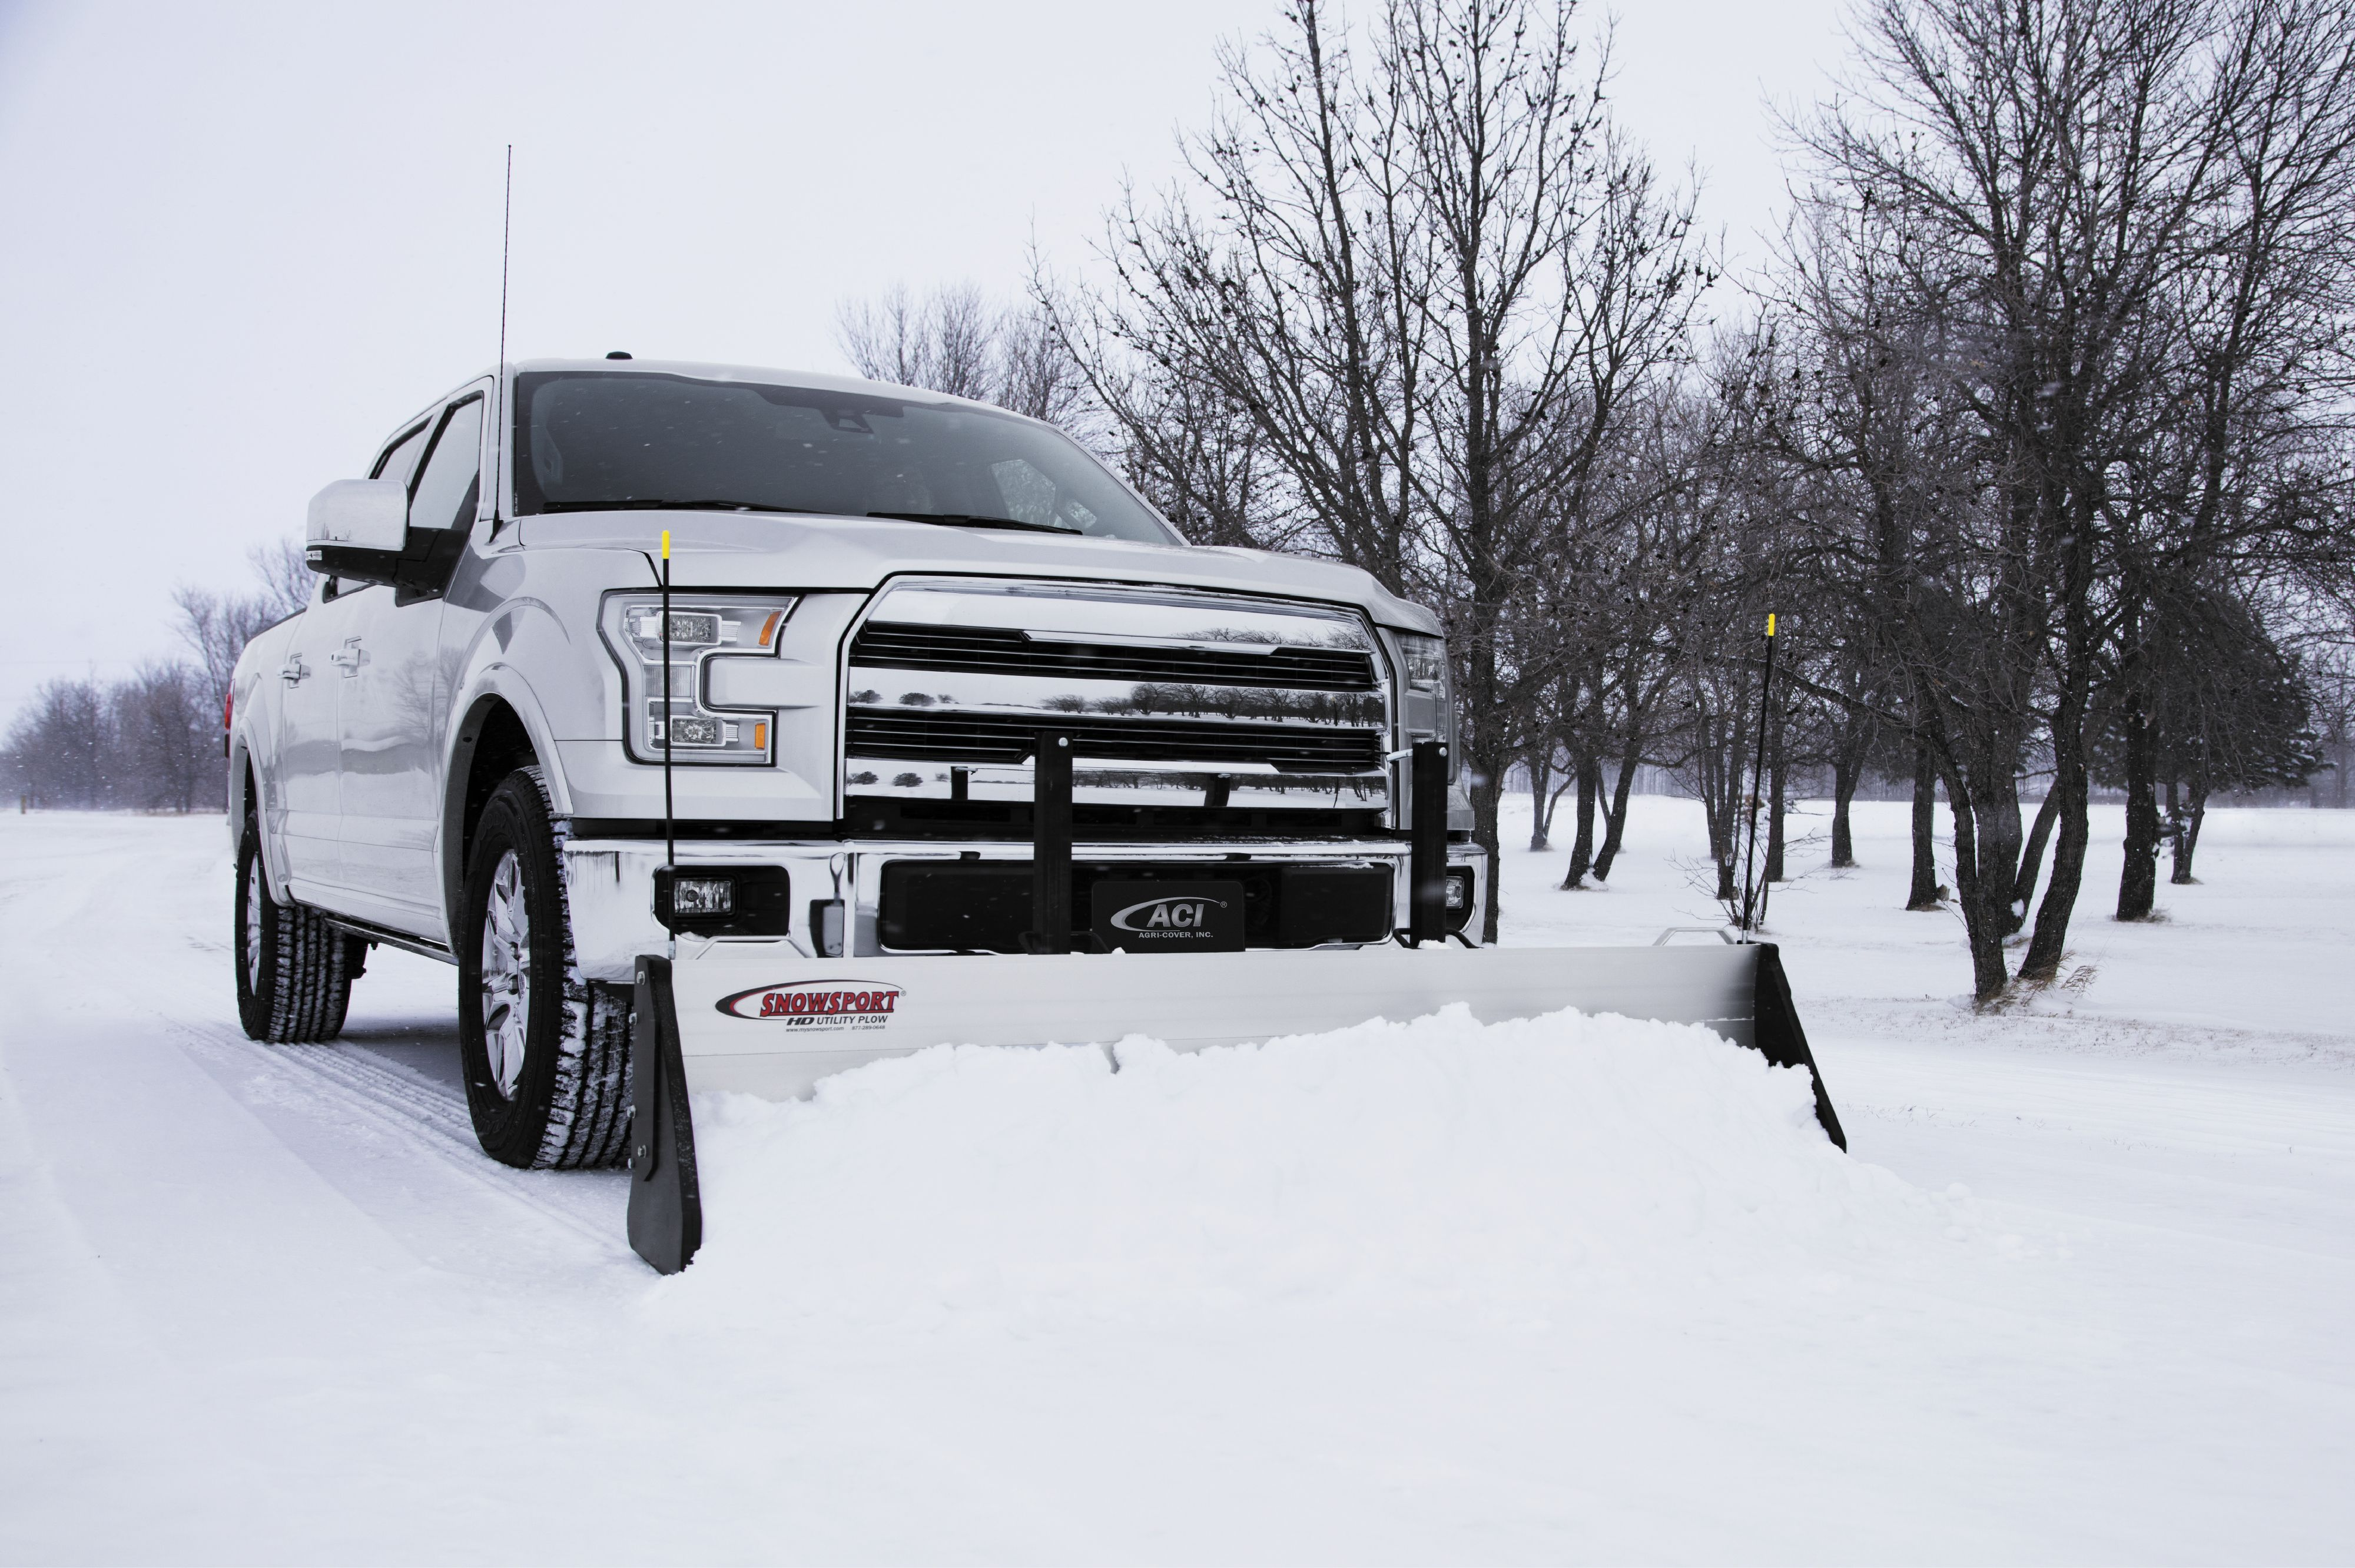 Nothing like fresh snow to lay new tracks. SNOWSPORT HD